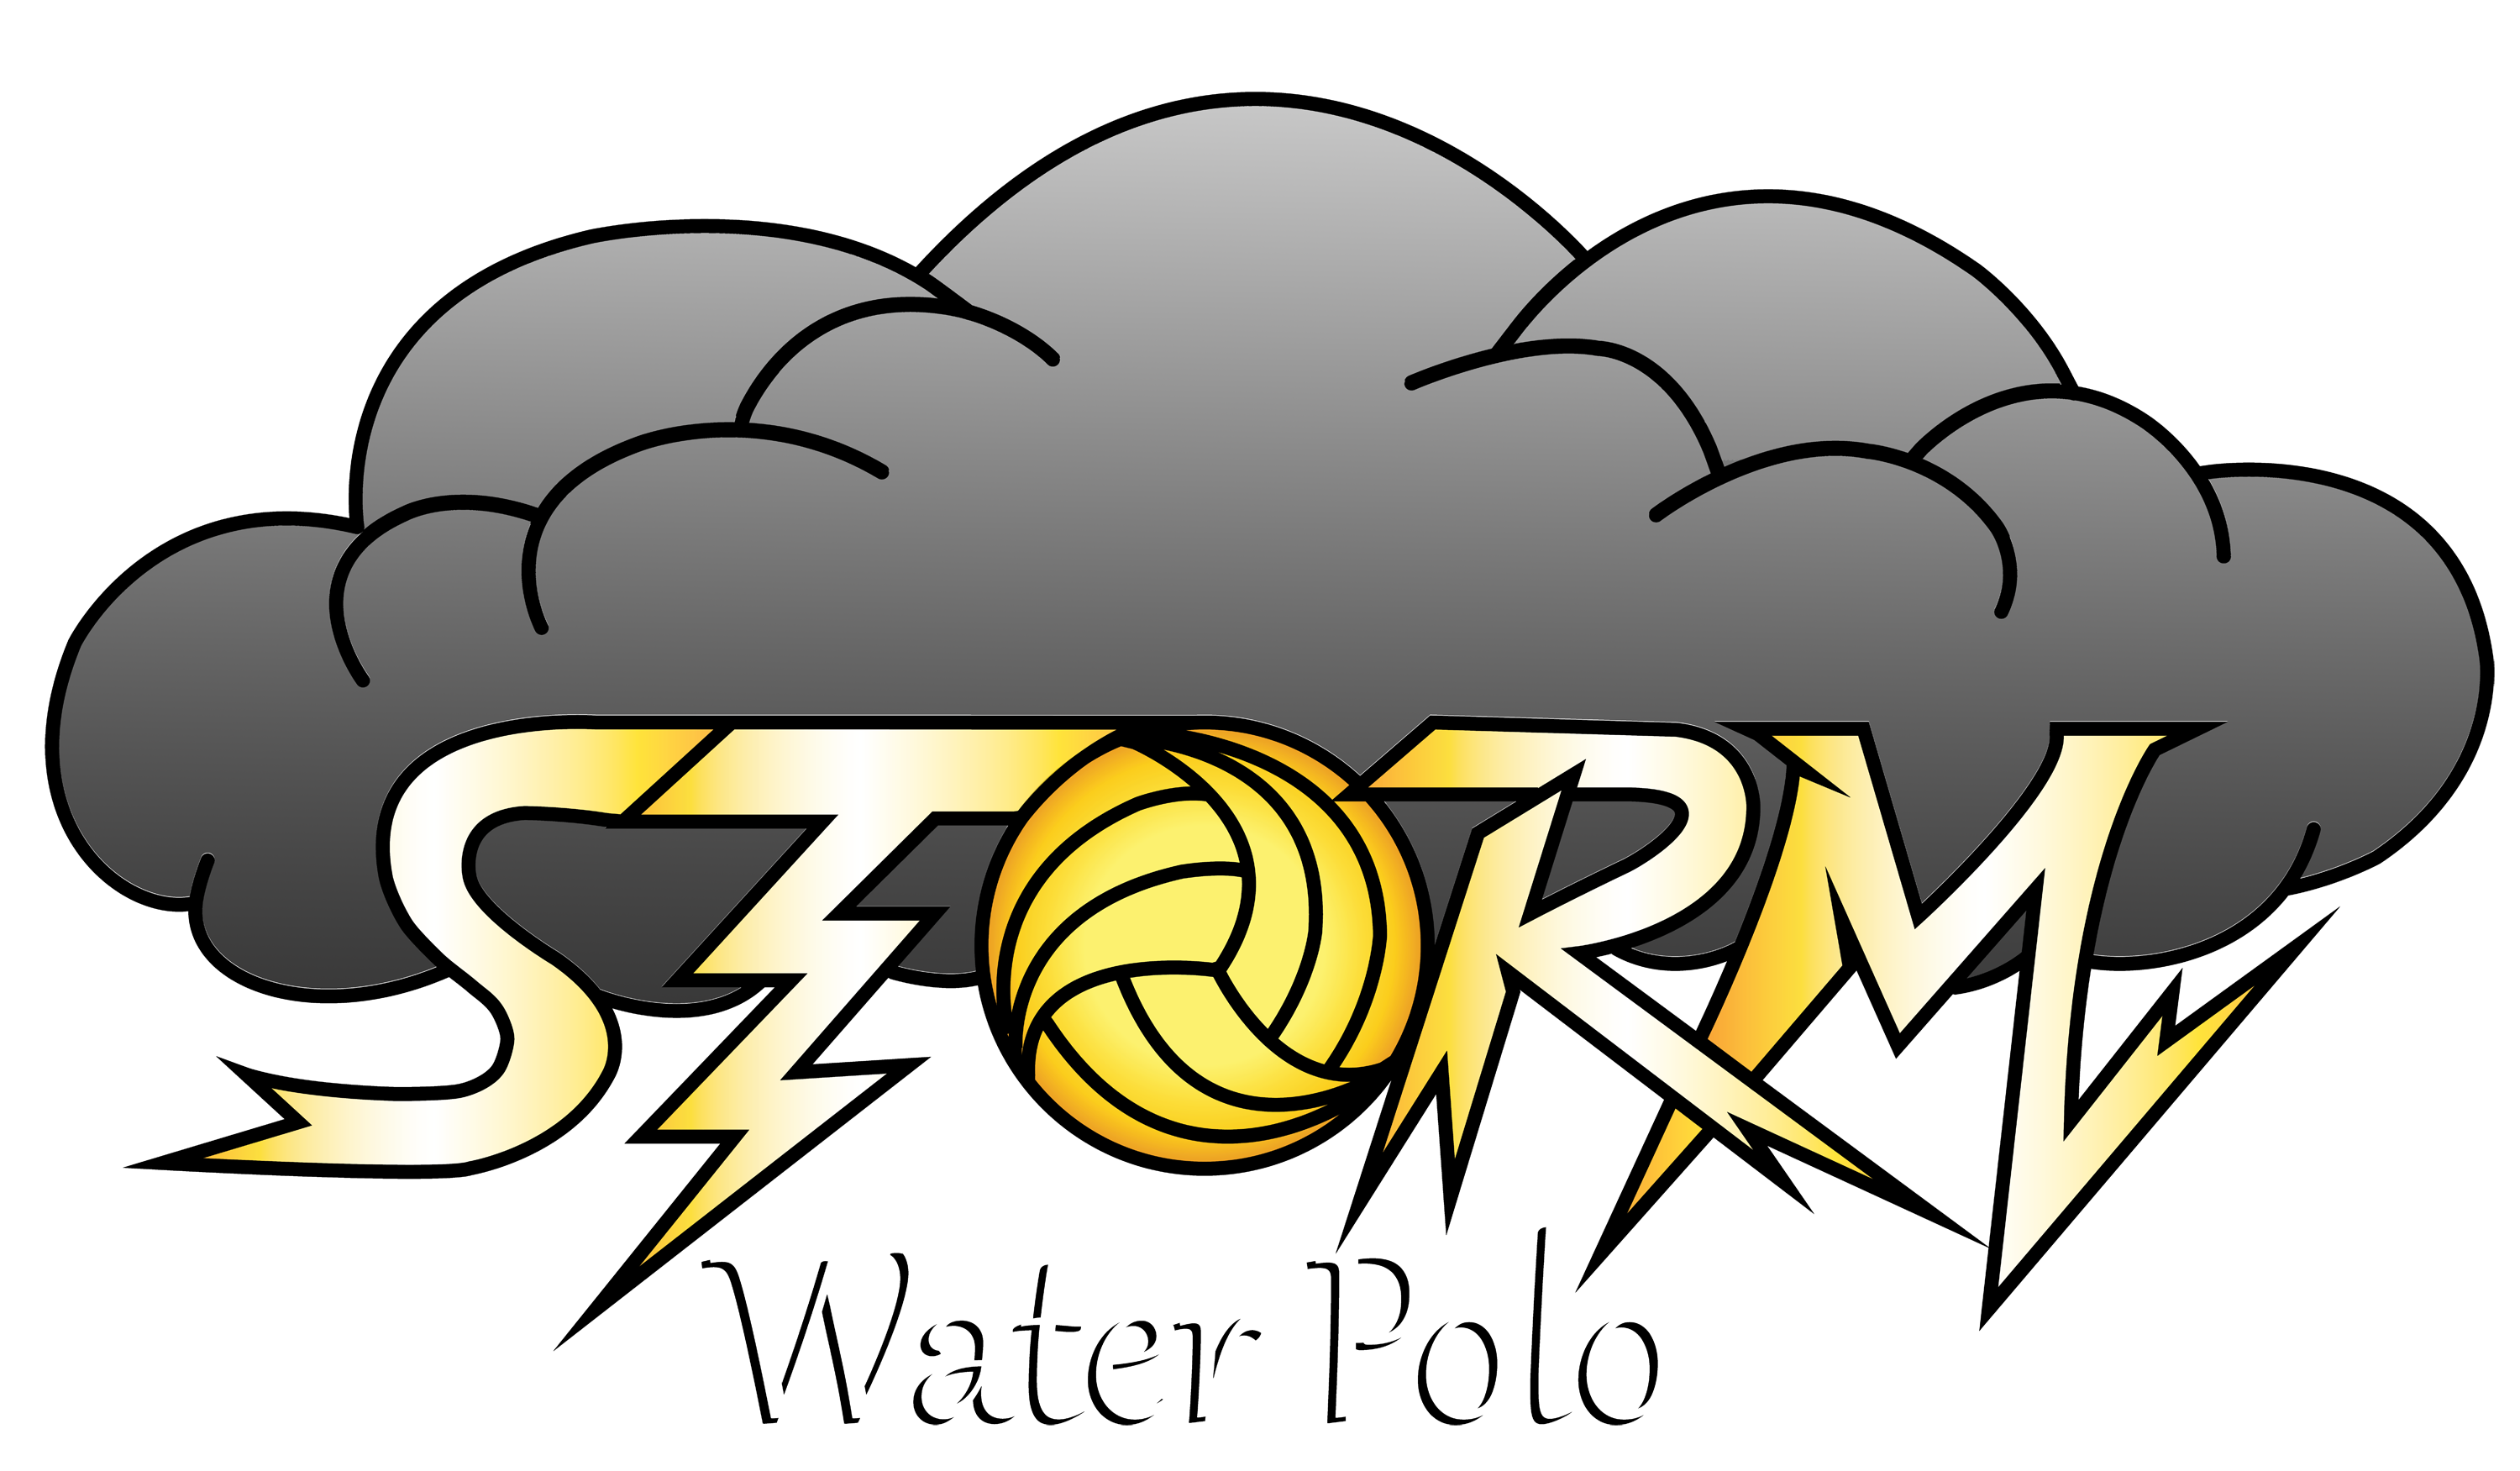 Water clipart storm. Elsinore polo